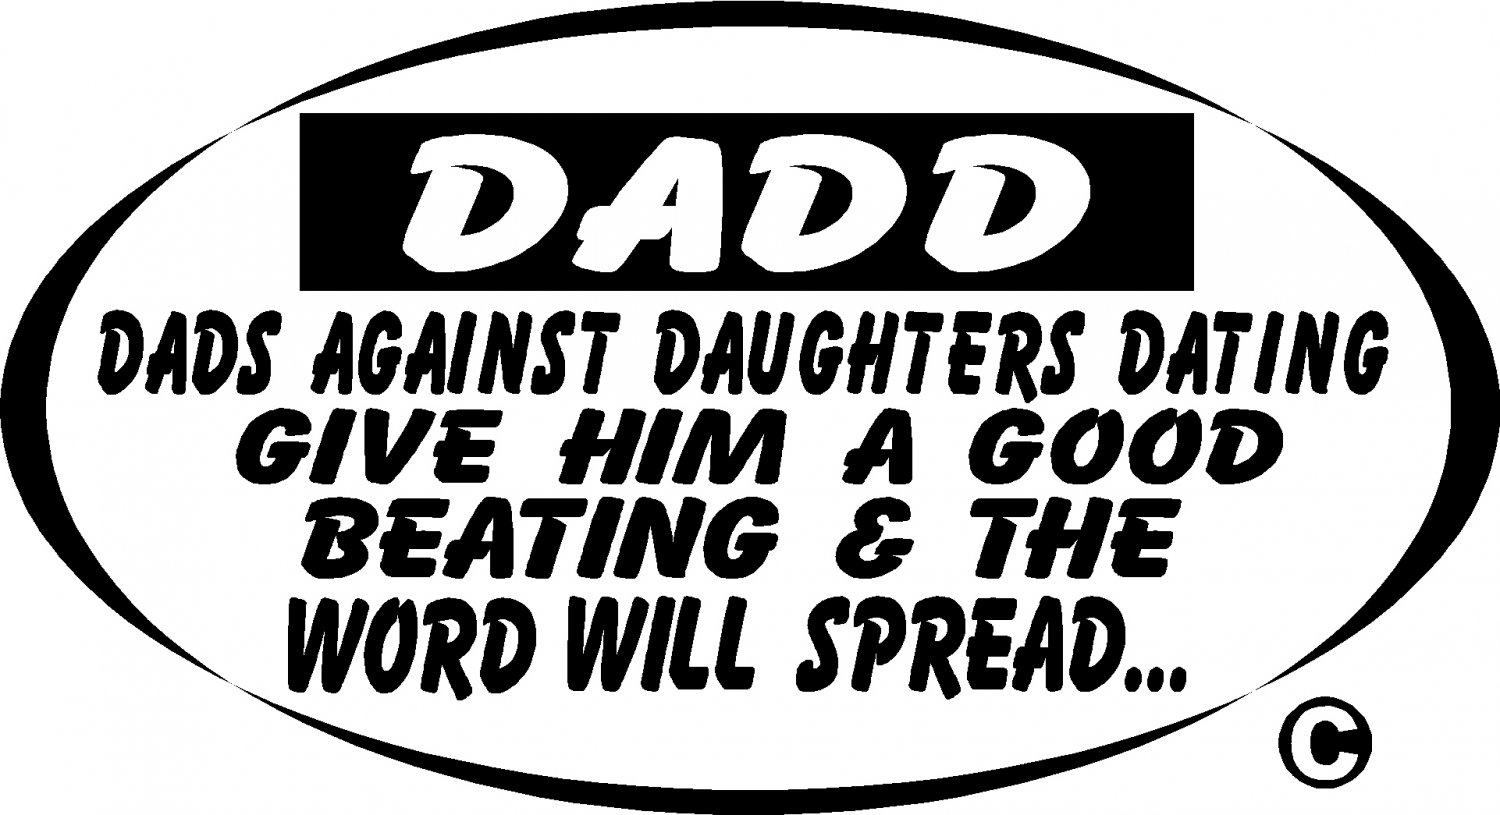 DADD Dads Against Daughters Dating vinyl Decal Sticker